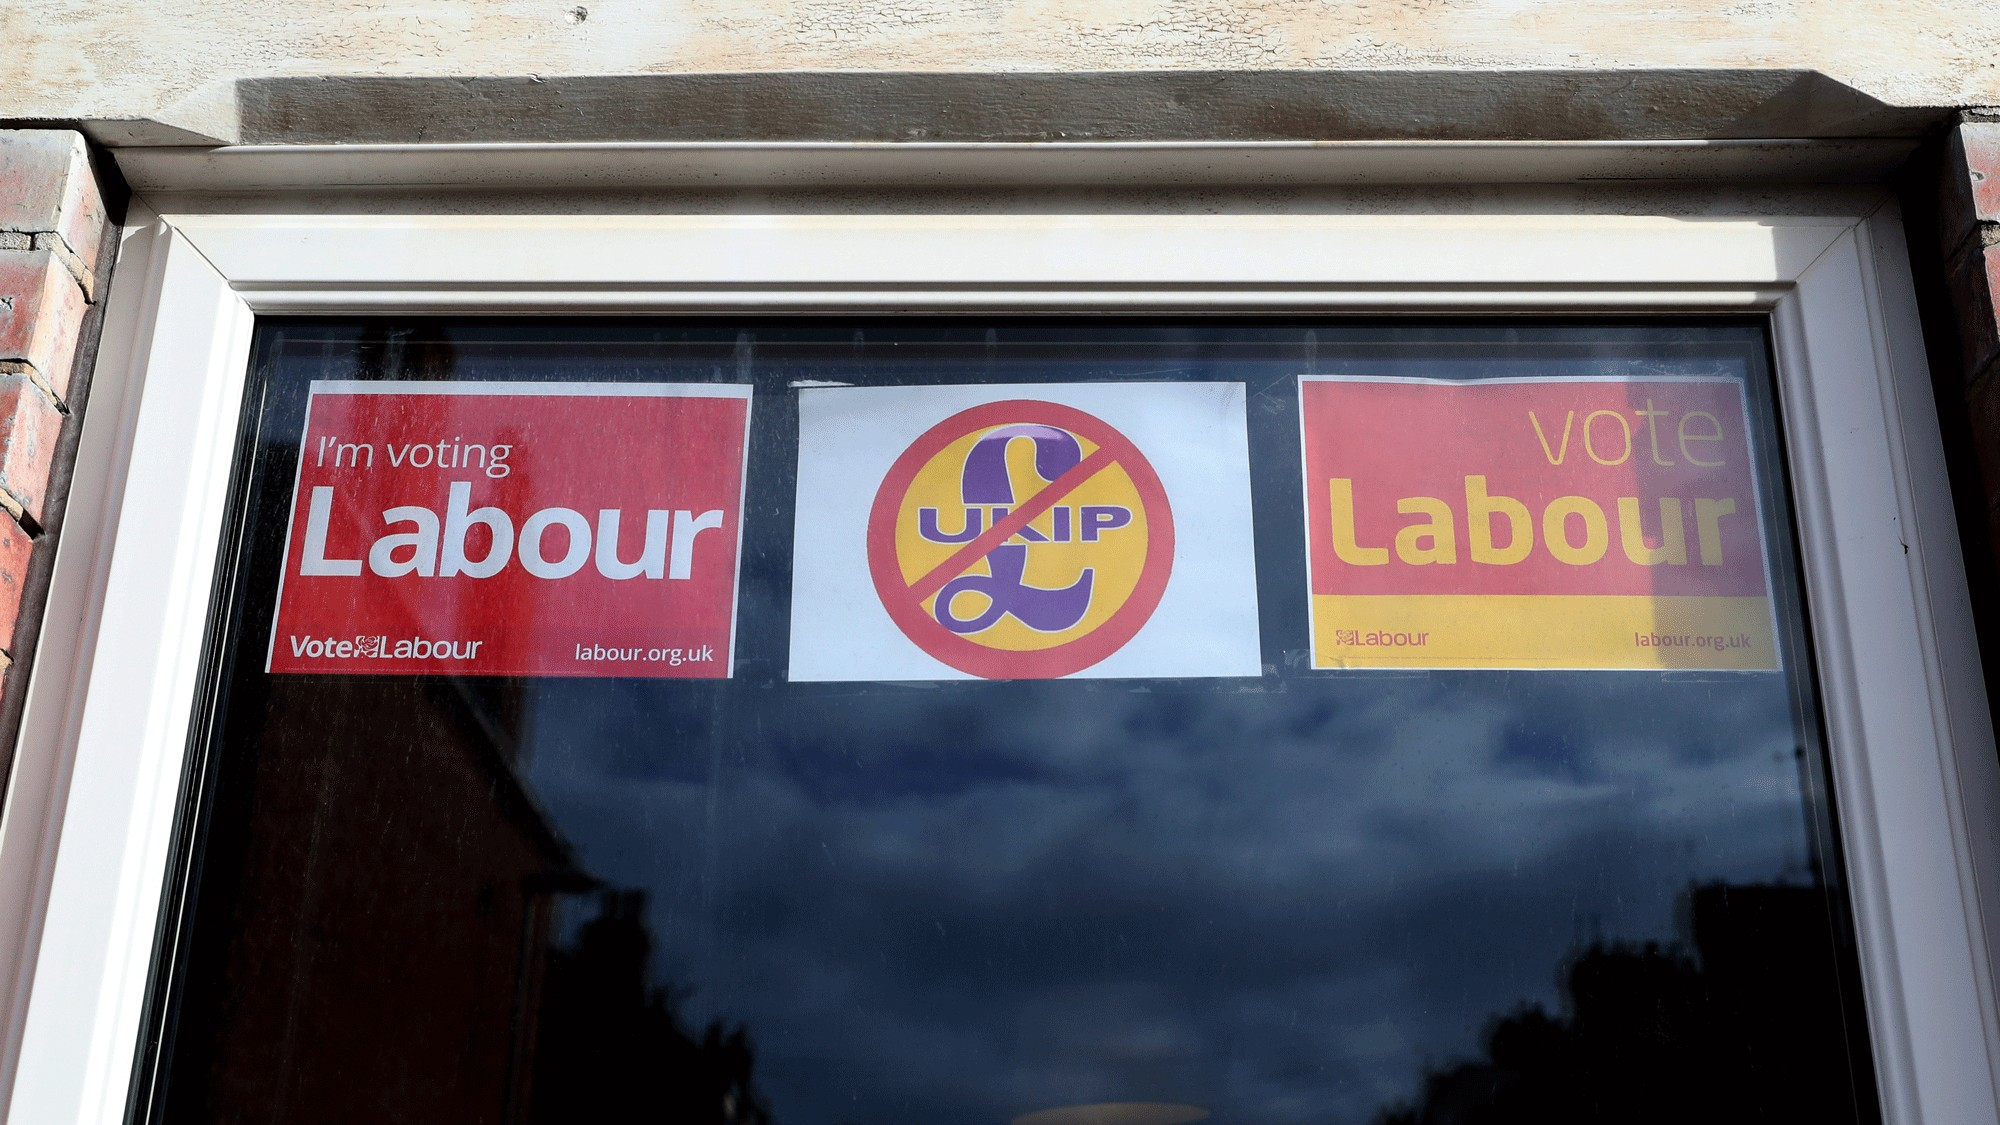 How Labour Can Win Over UKIP Voters - VICE